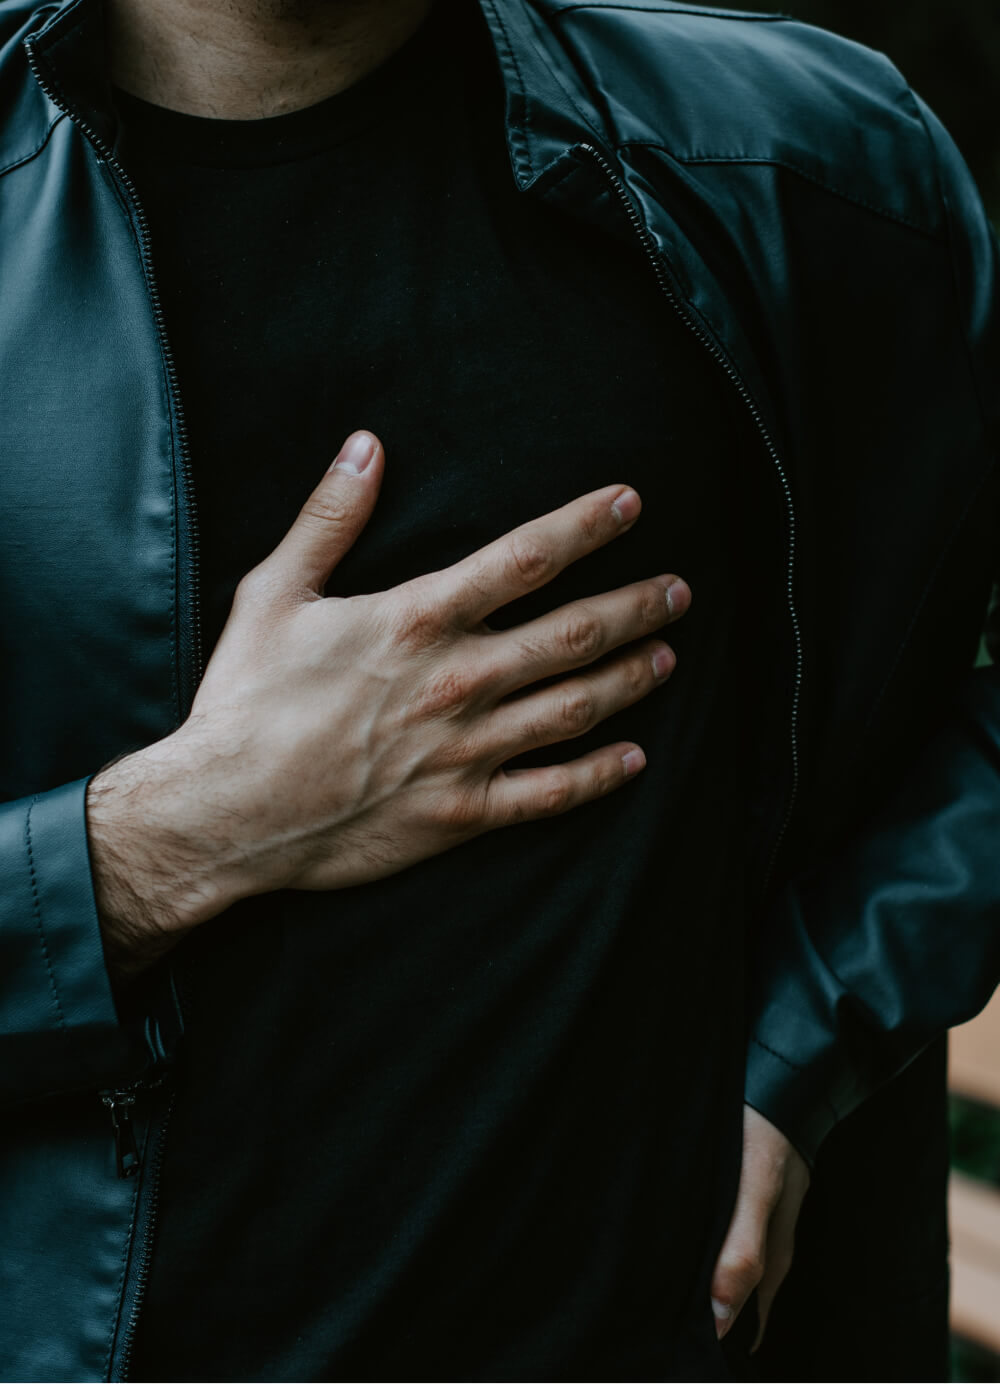 Man in a jacket with his hand on his chest